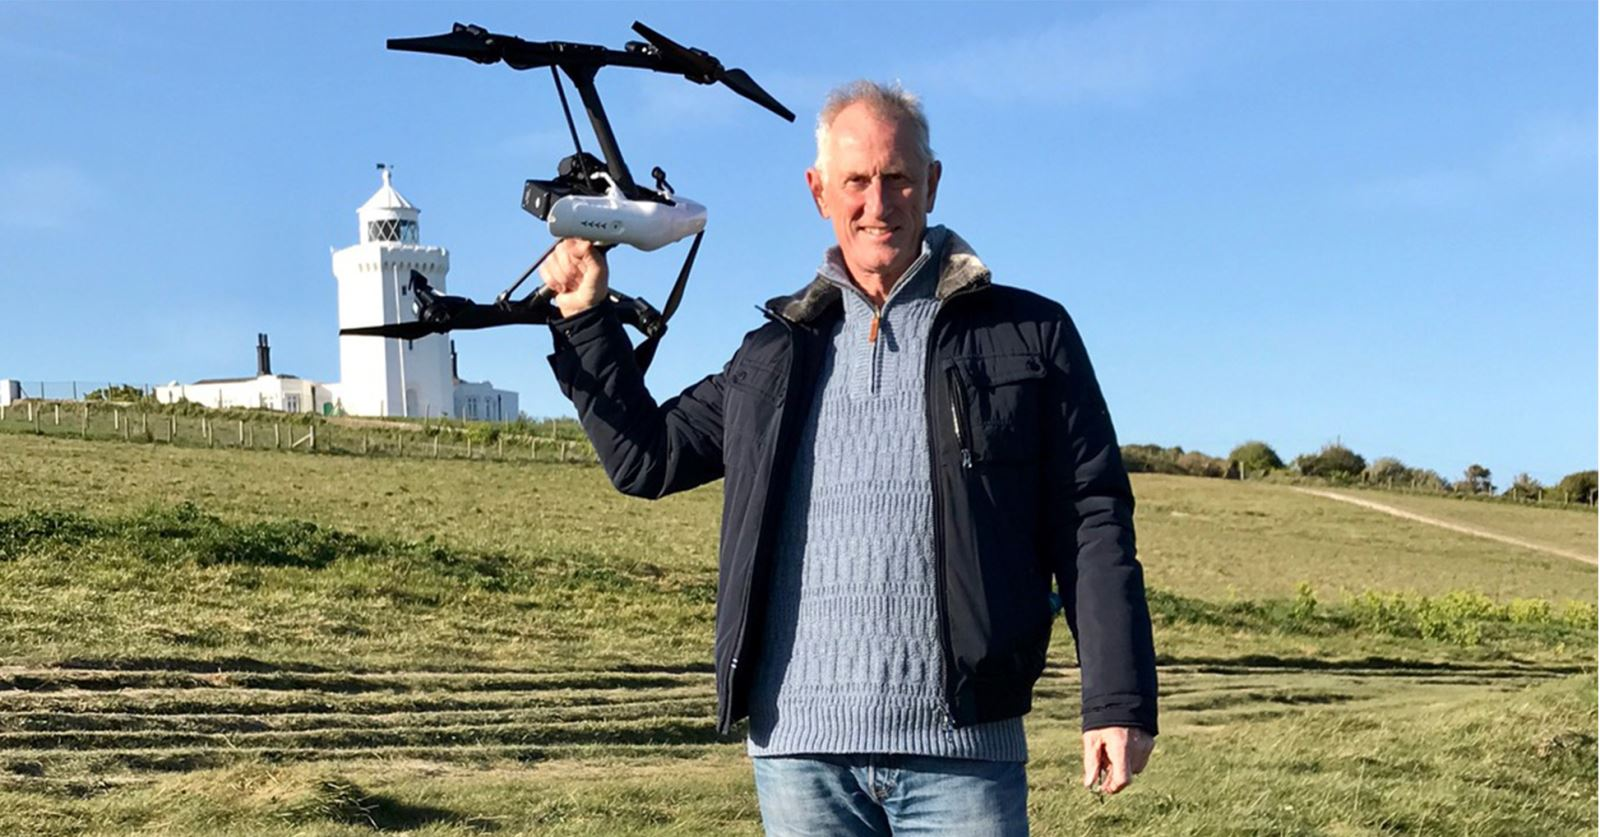 Welcome to new GTC member Alan Scott, seen here at Dover Lighthouse with a DJI Inspire 1 Pro + Zenmuse X5 4K camera